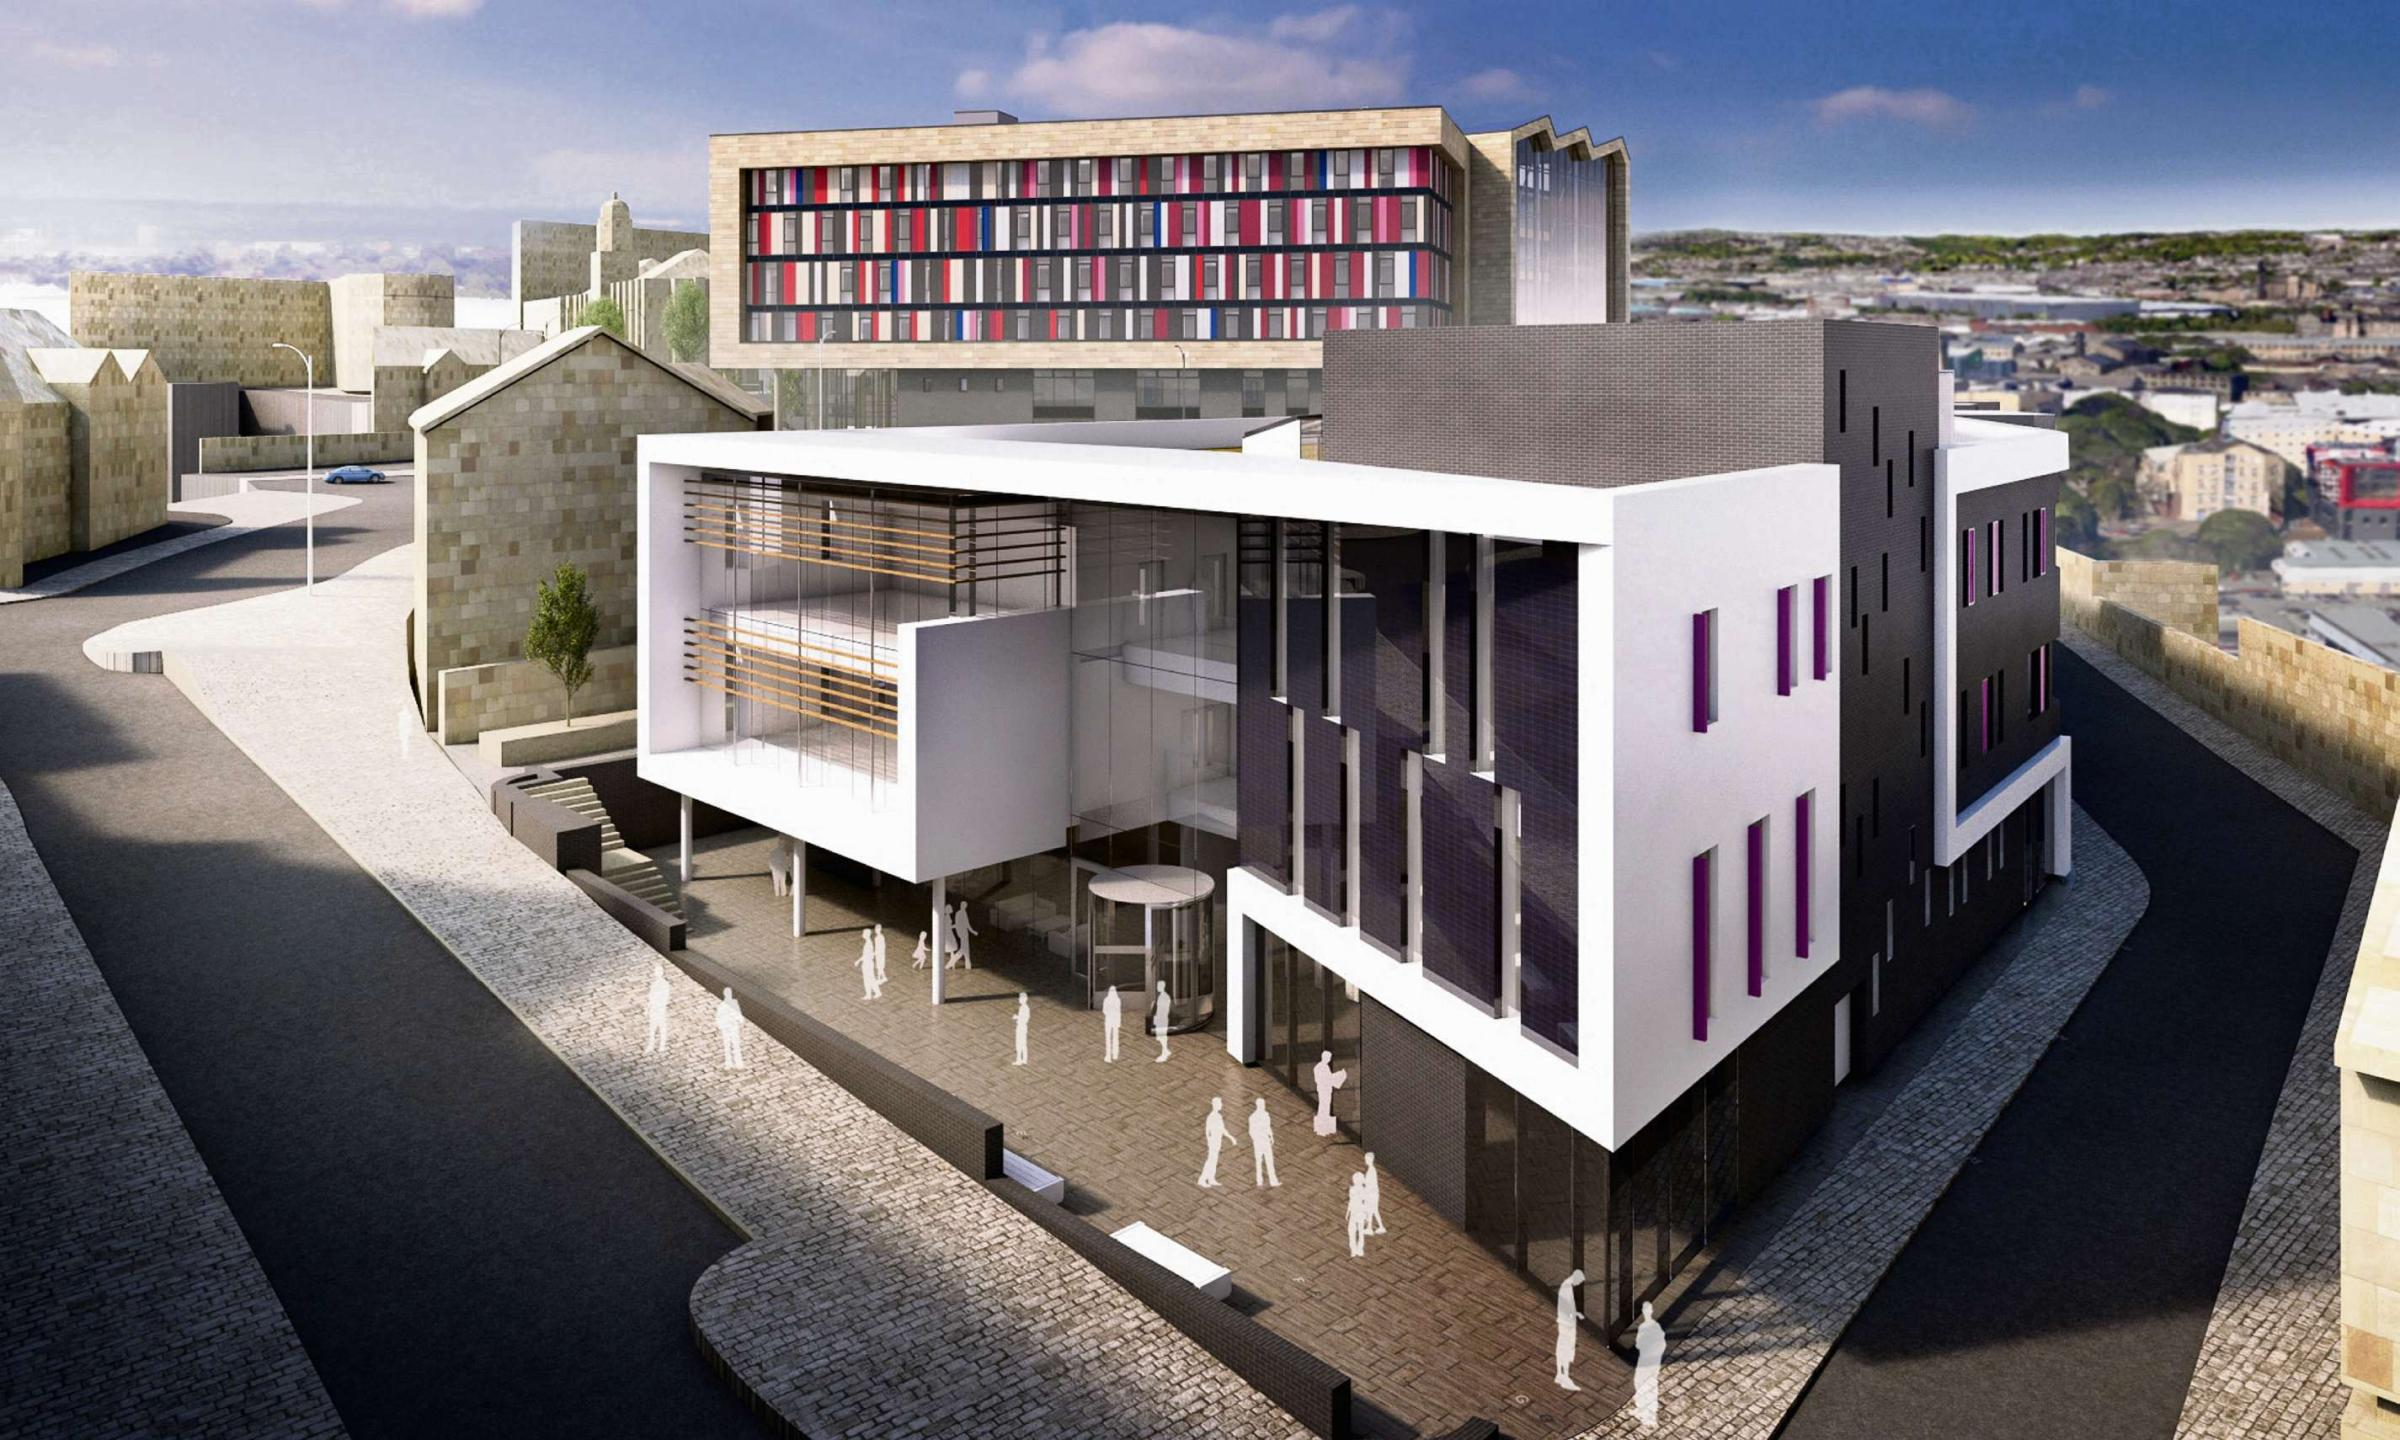 An artist's impression of the Advanced Technologies Centre at Bradford College